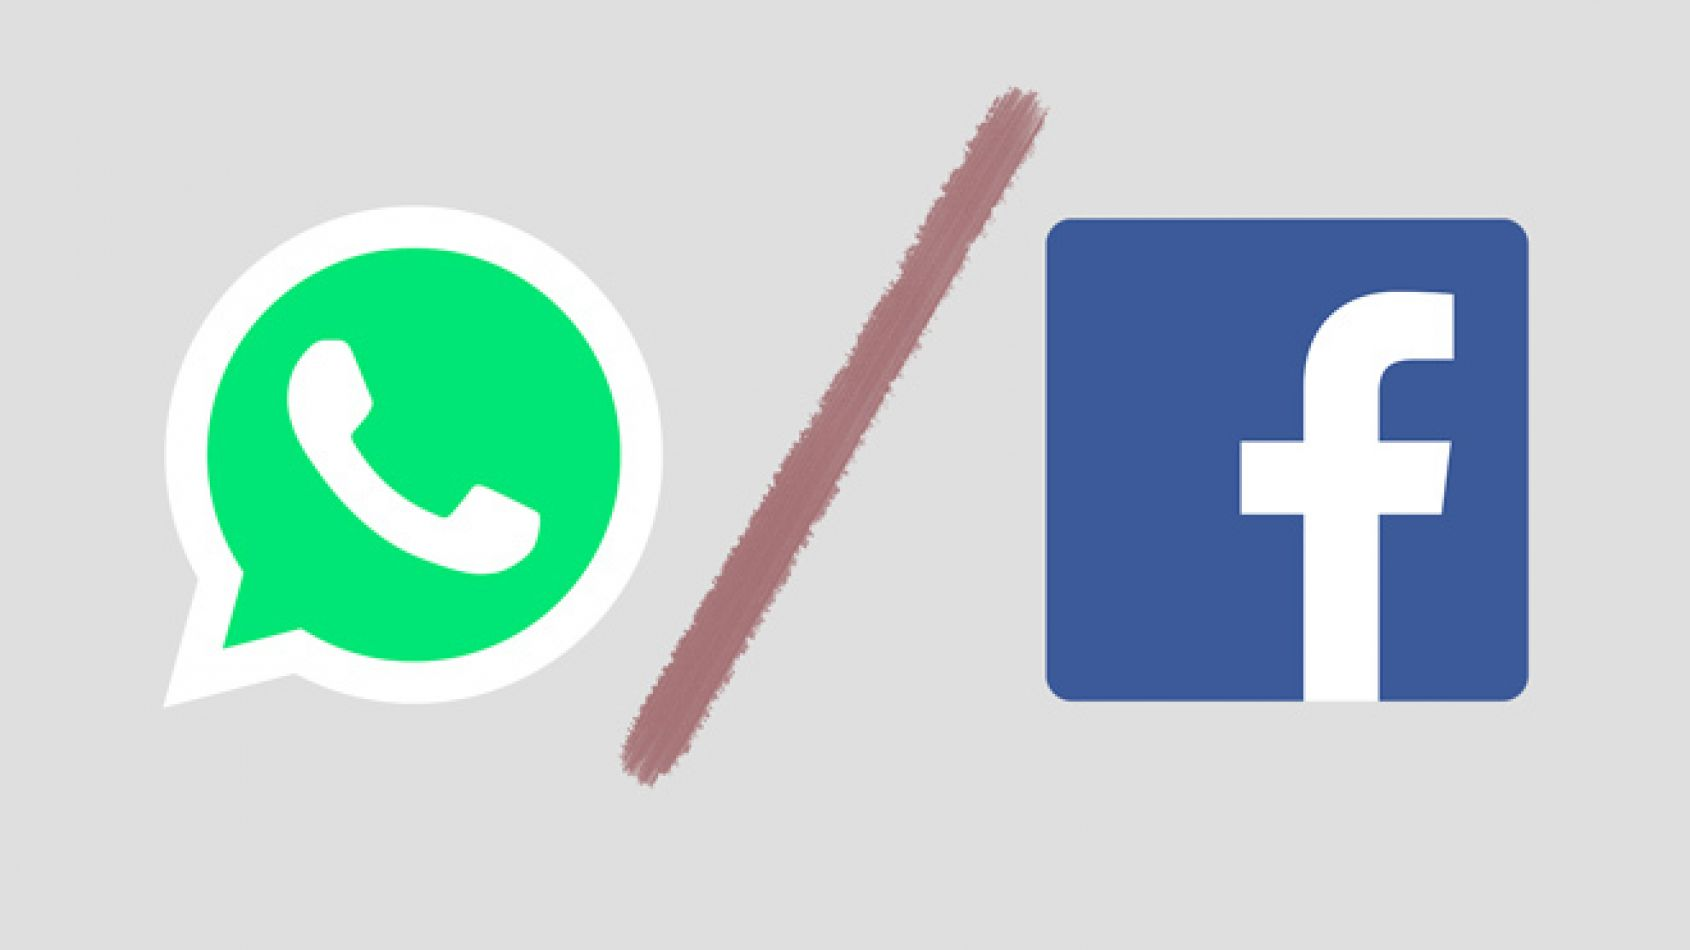 Multan a WhatsApp y Facebook por compartir datos de los usuarios